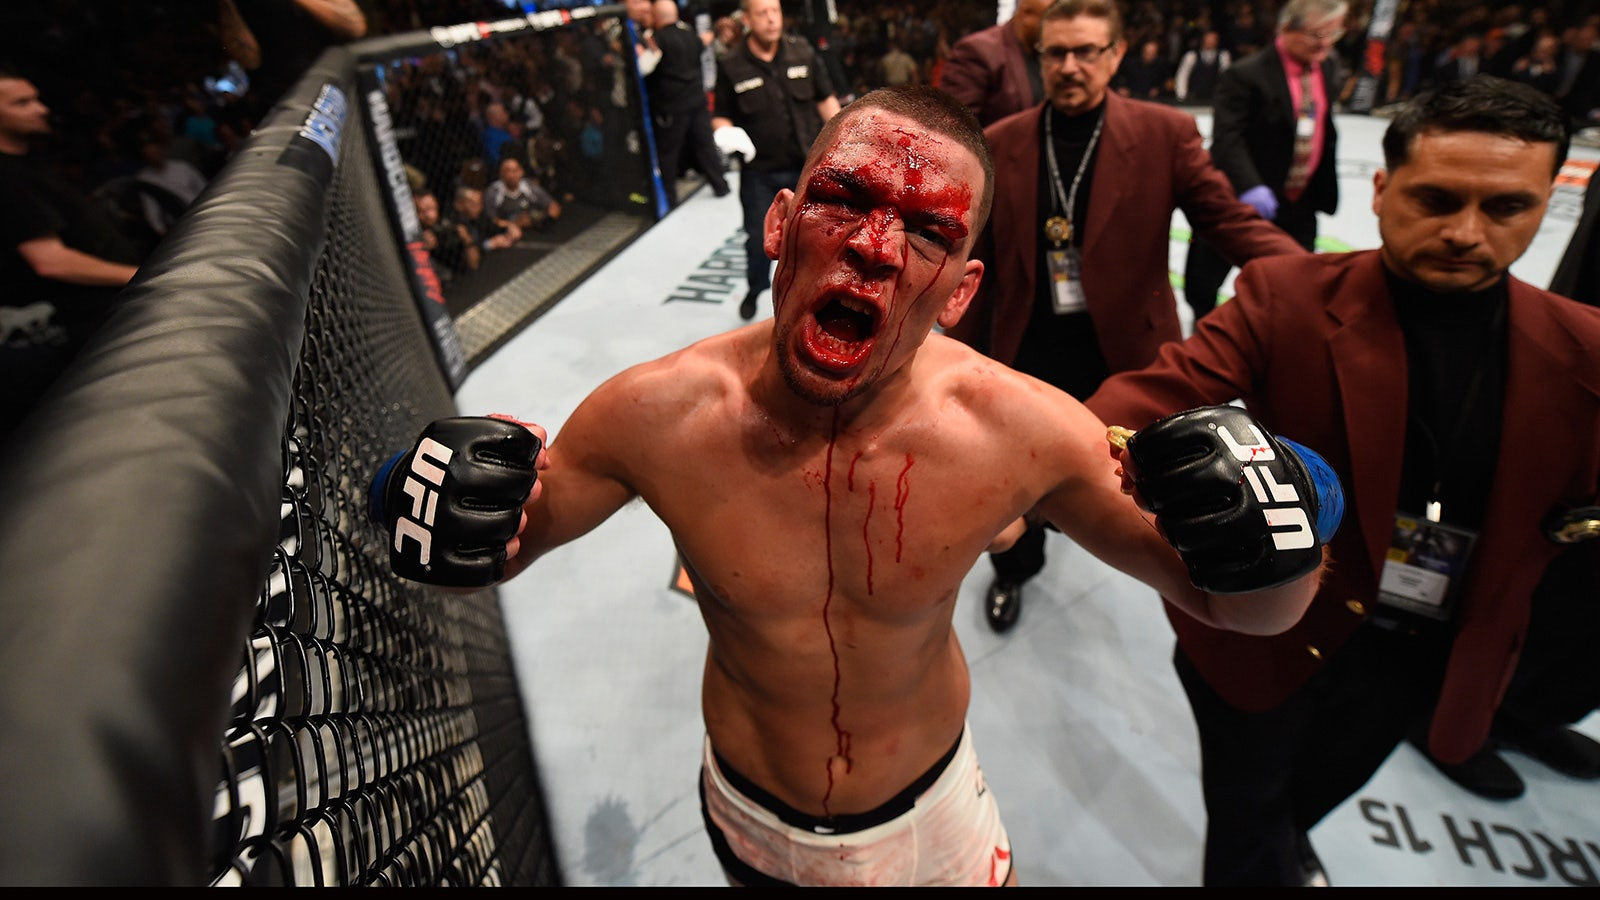 030516-UFC-Nate-Diaz-reacts-to-his-victo